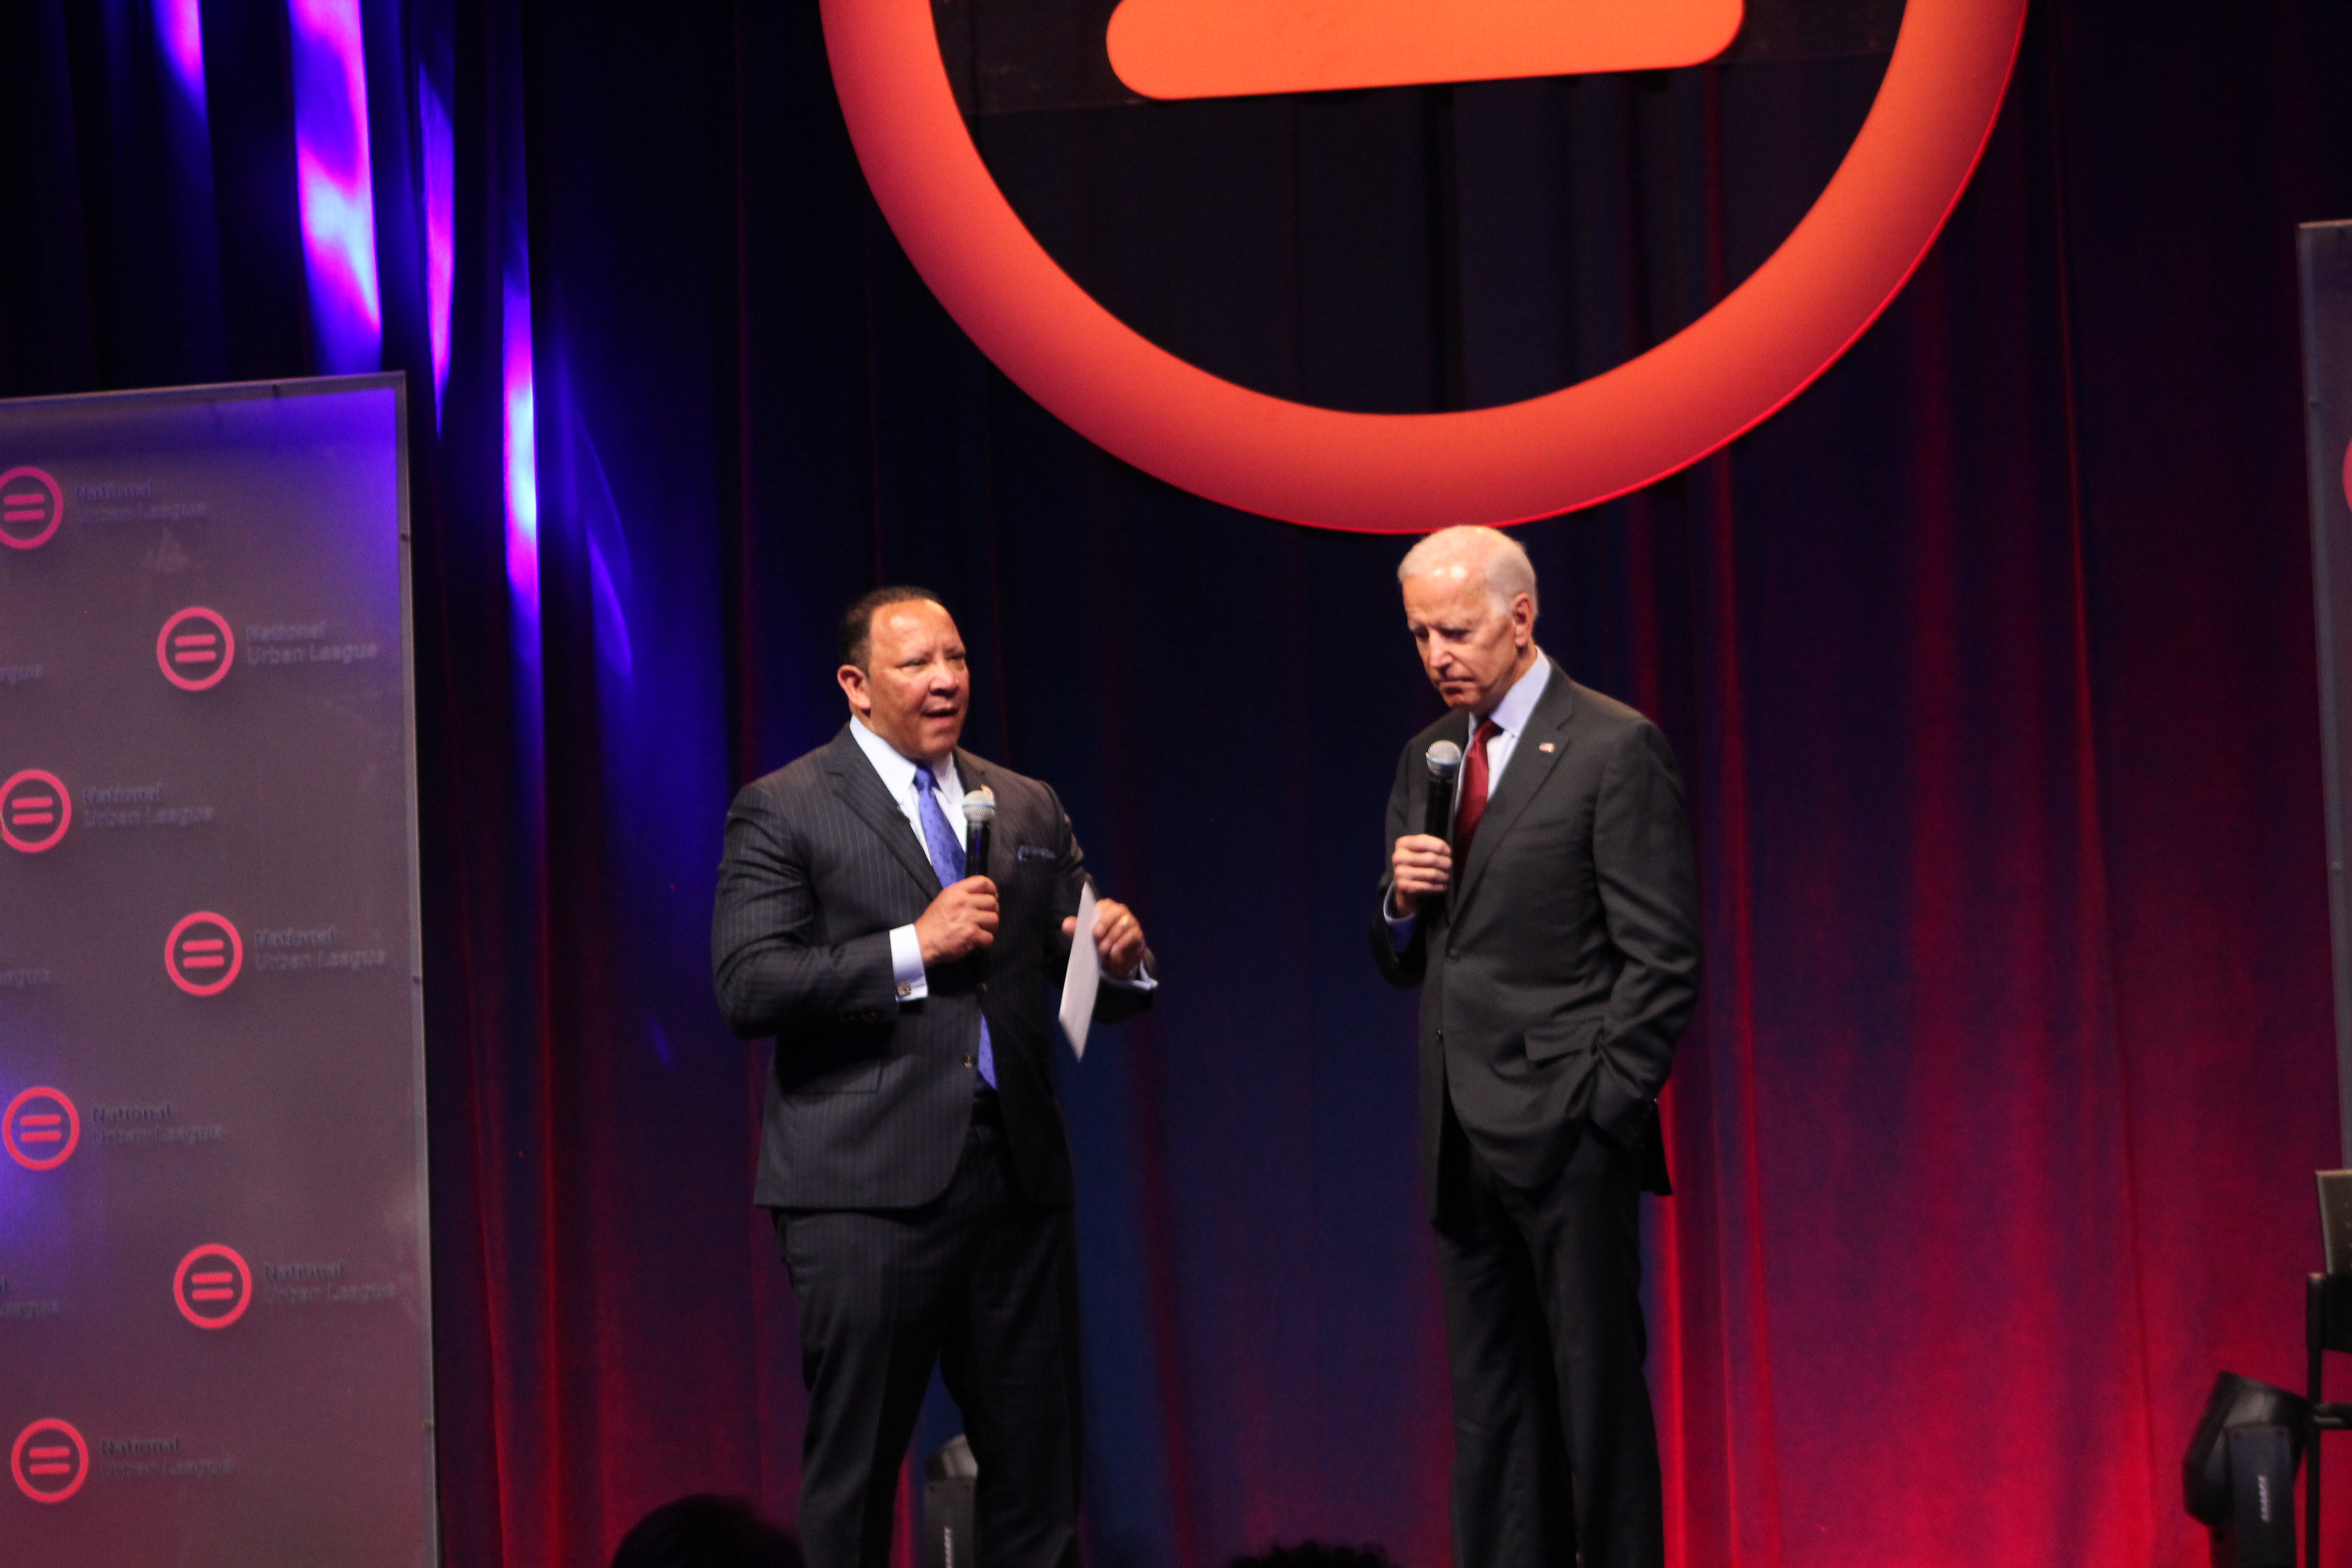 Former vice president Joe Biden speaks with National Urban League President Marc Morial at the organization's conference Thursday in Indianapolis.